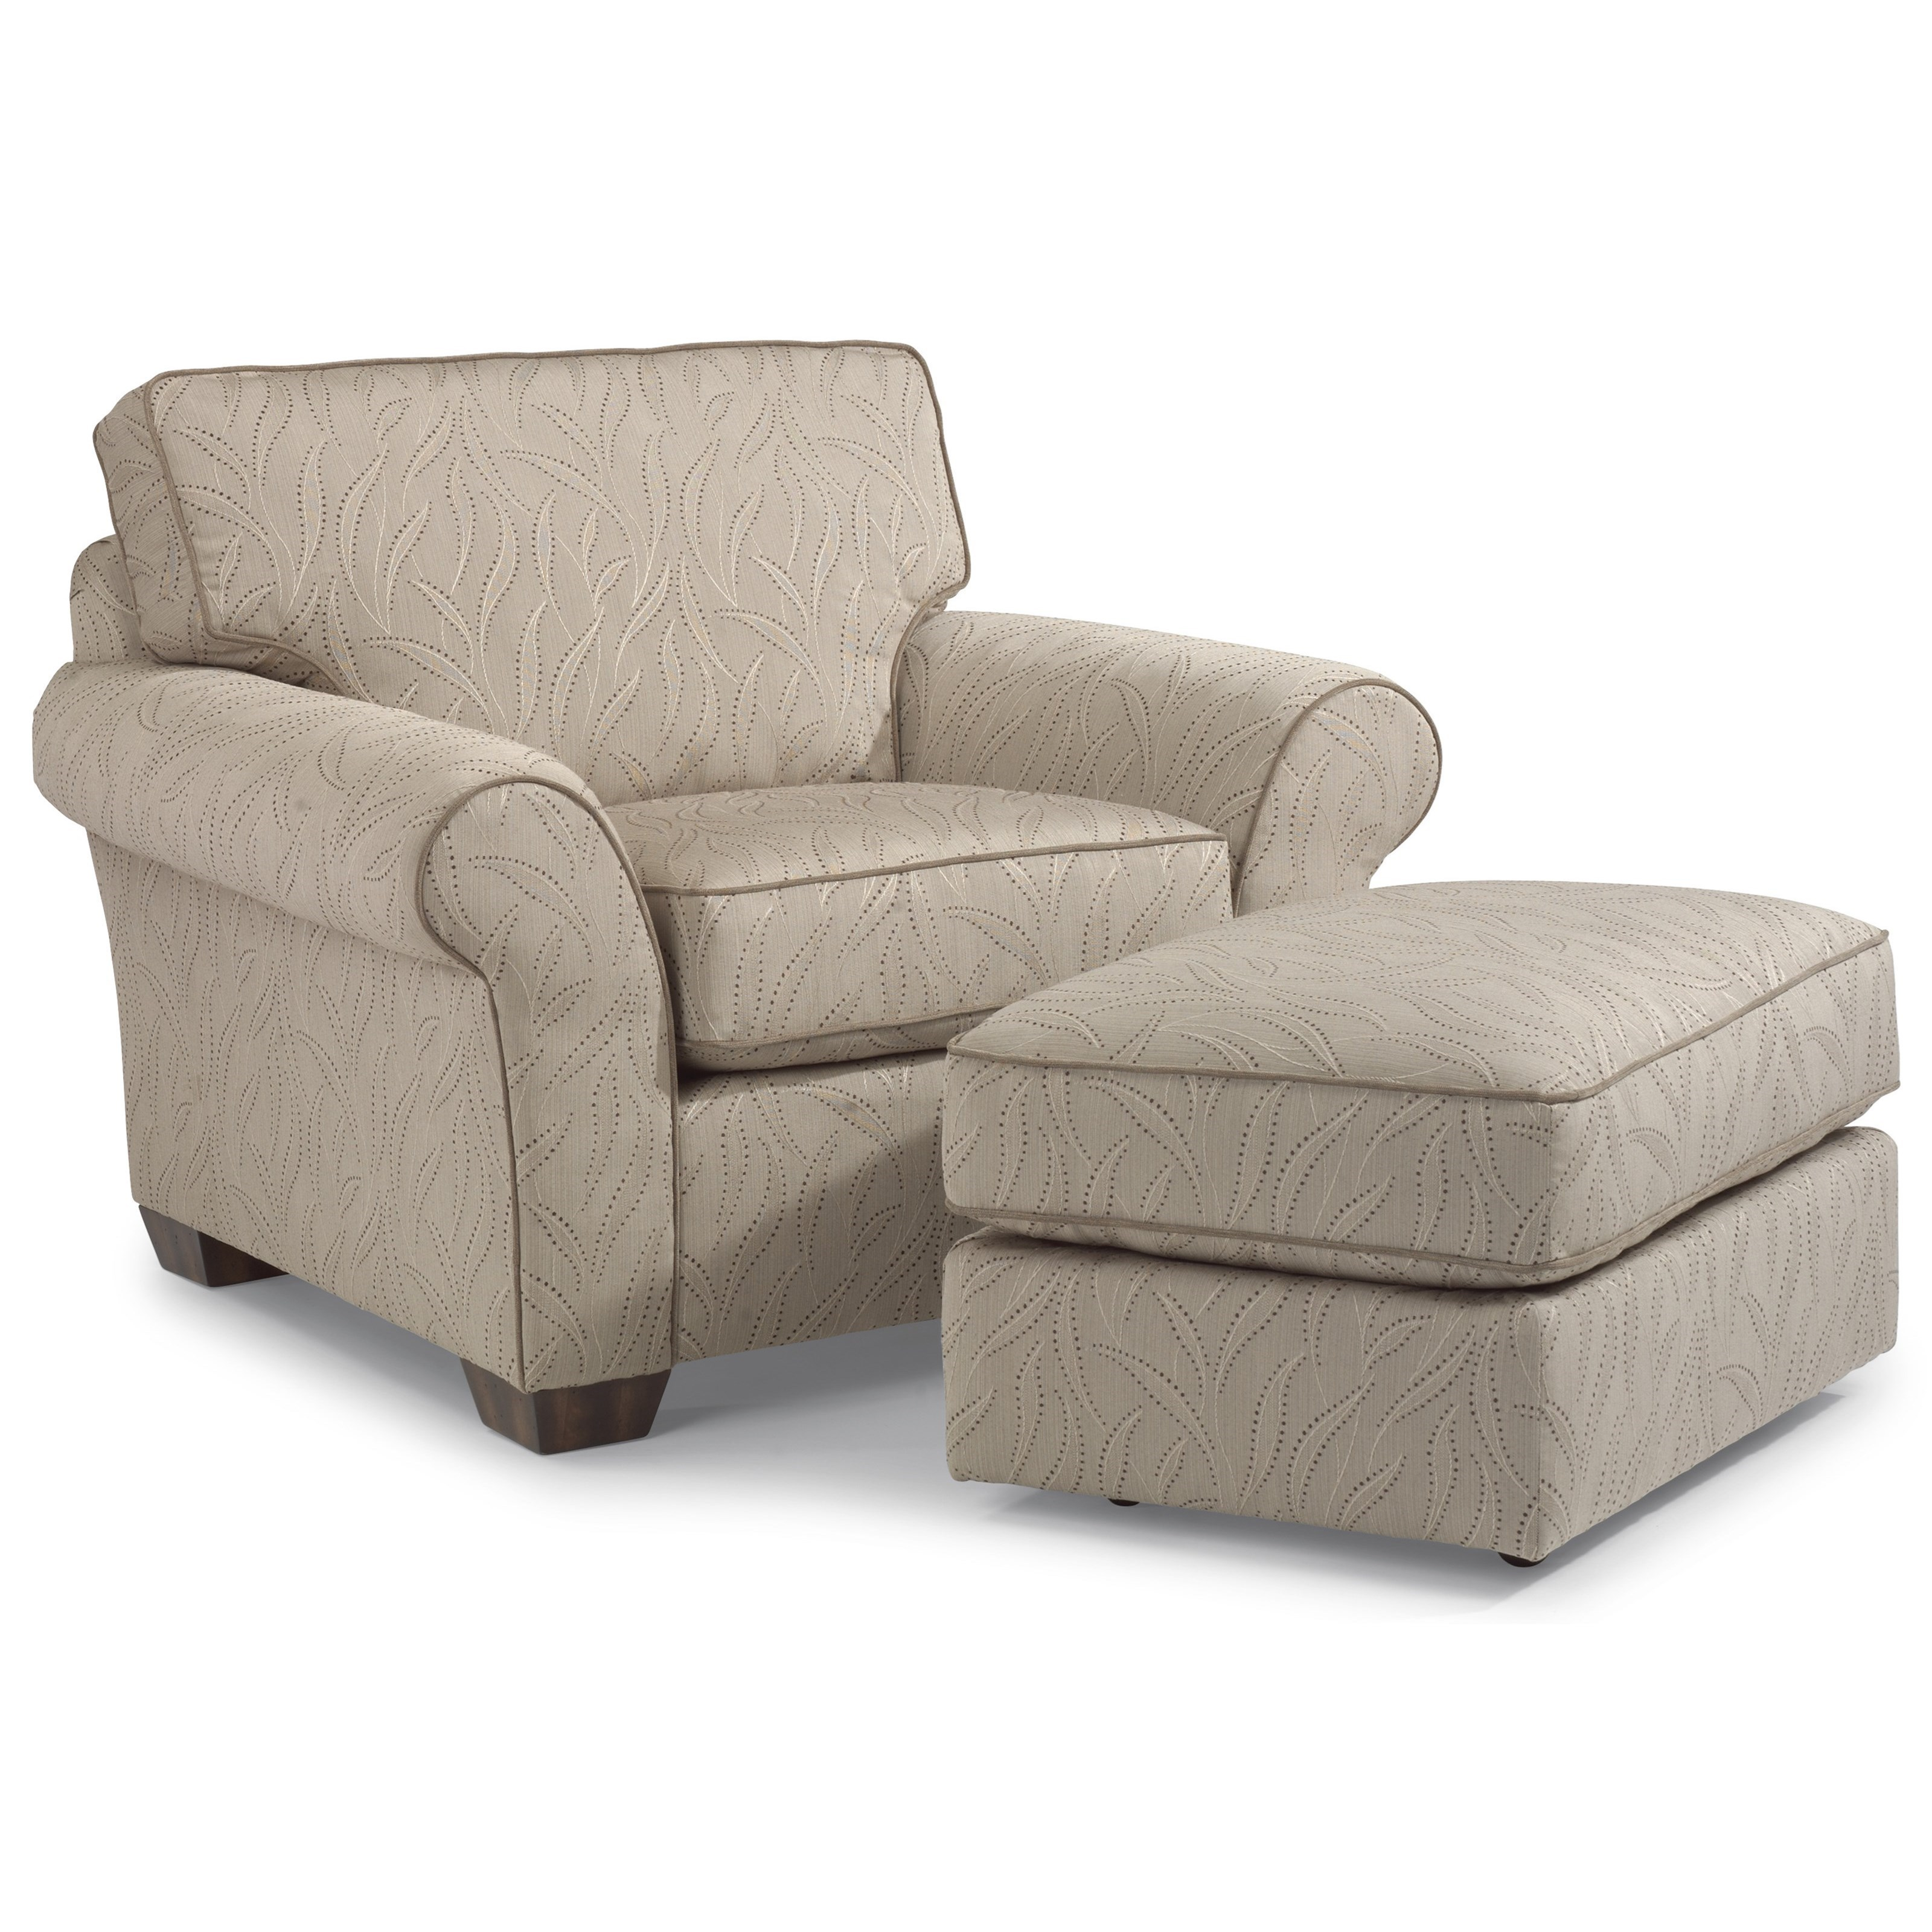 Vail Chair and Ottoman by Flexsteel at Mueller Furniture